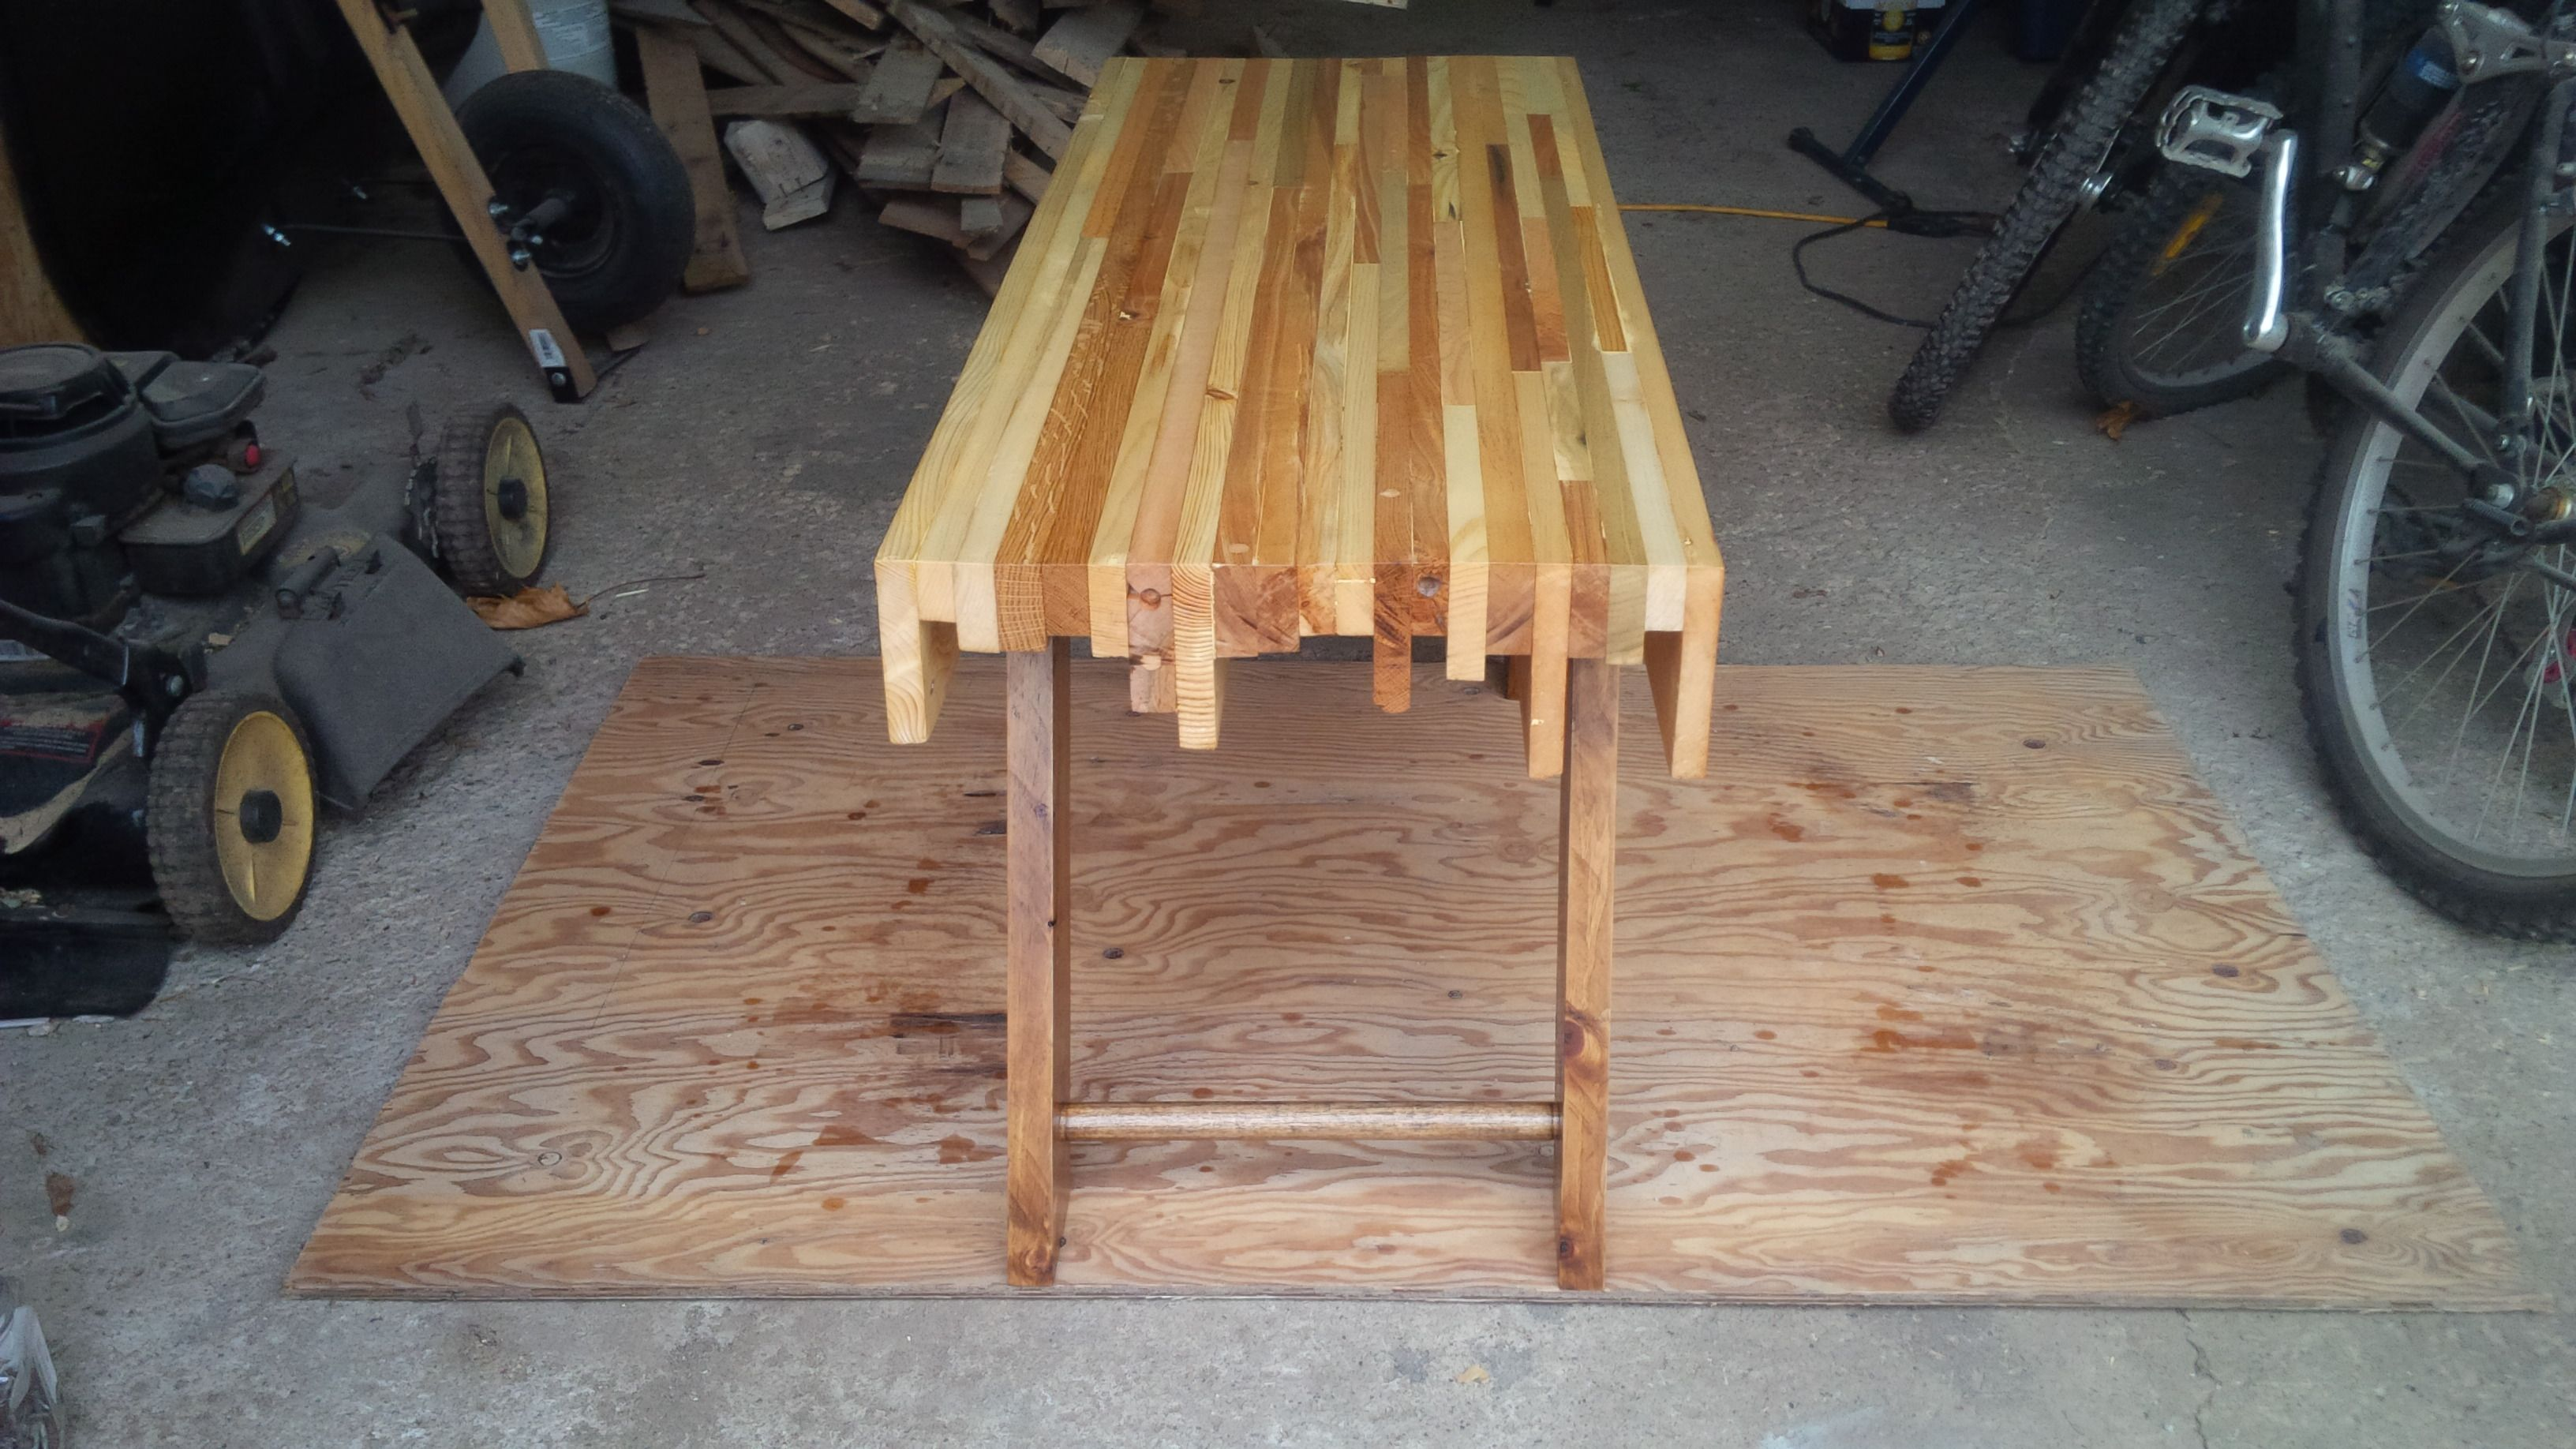 Made almost entirely from an old headboard and couch